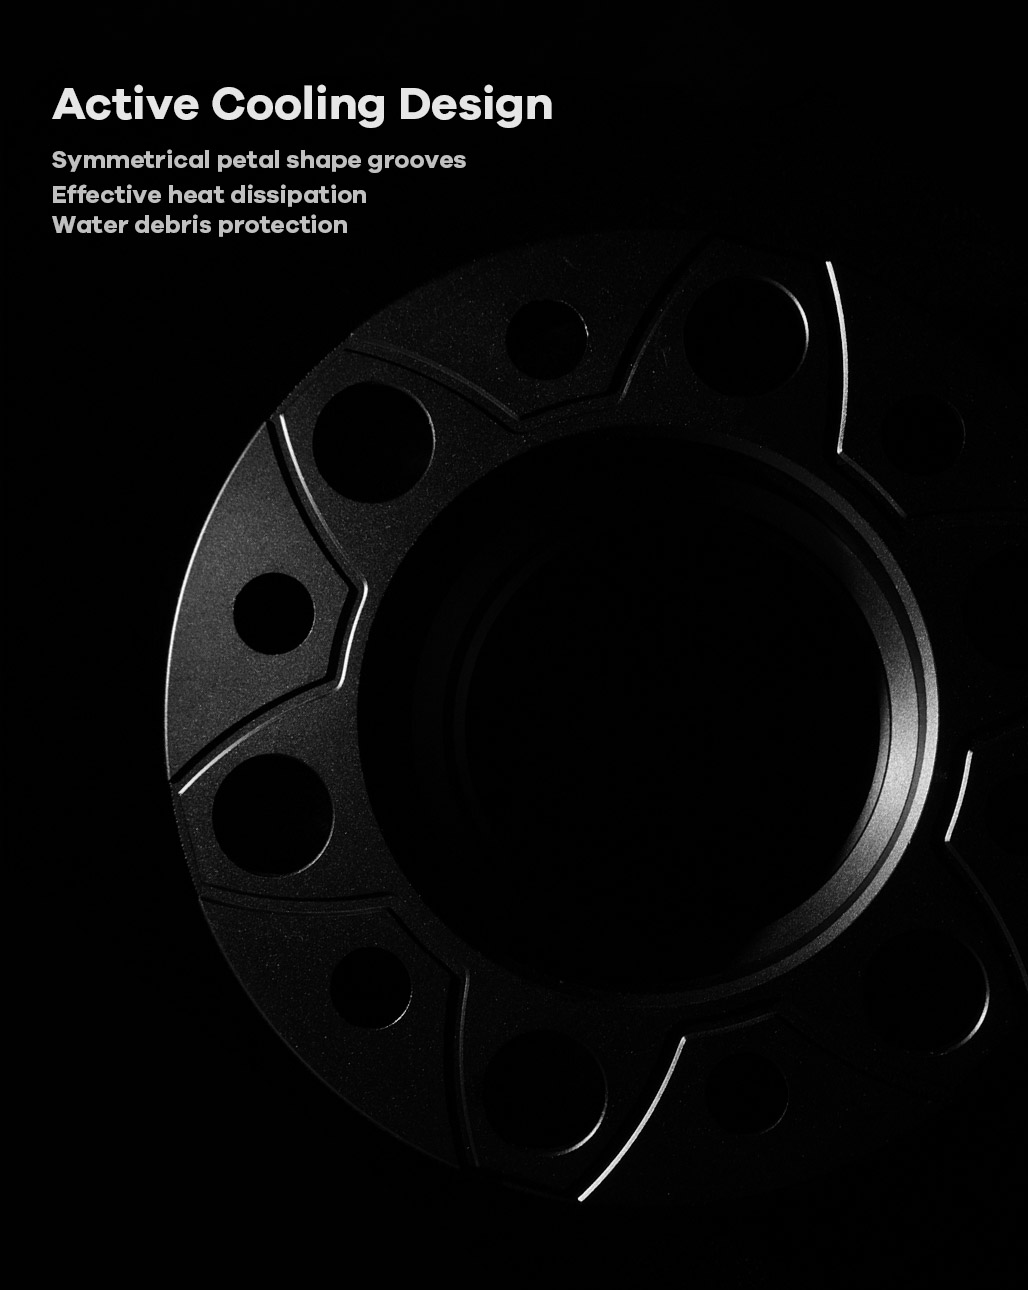 BONOSS-forged-active-cooling-wheel-spacer-6X139.7-100-M12X1.5-by-lulu-3